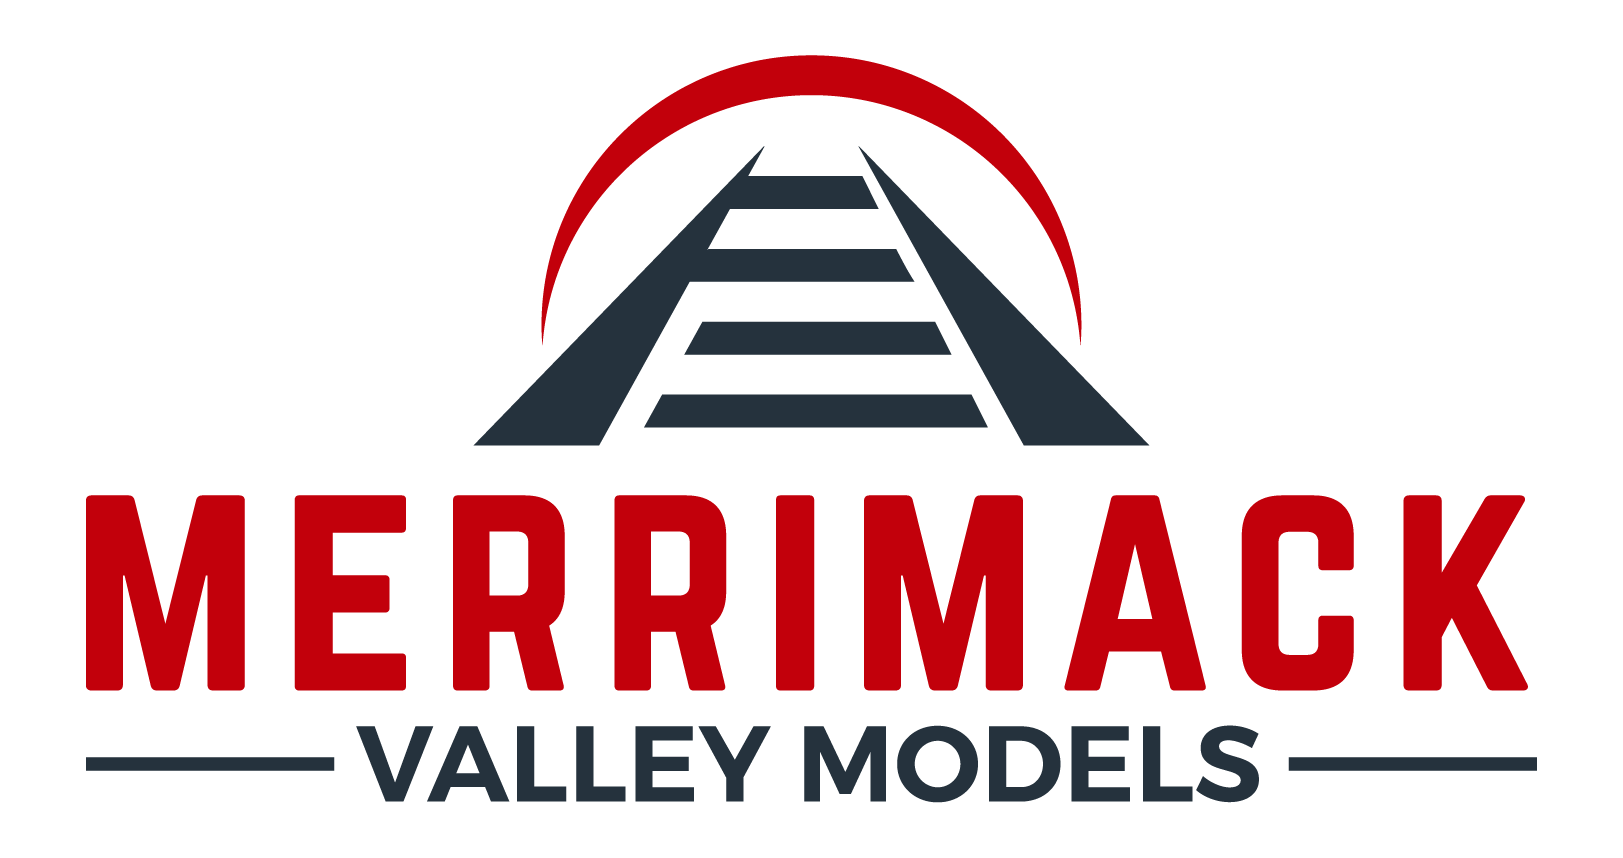 Merrimack Valley Models, LLC